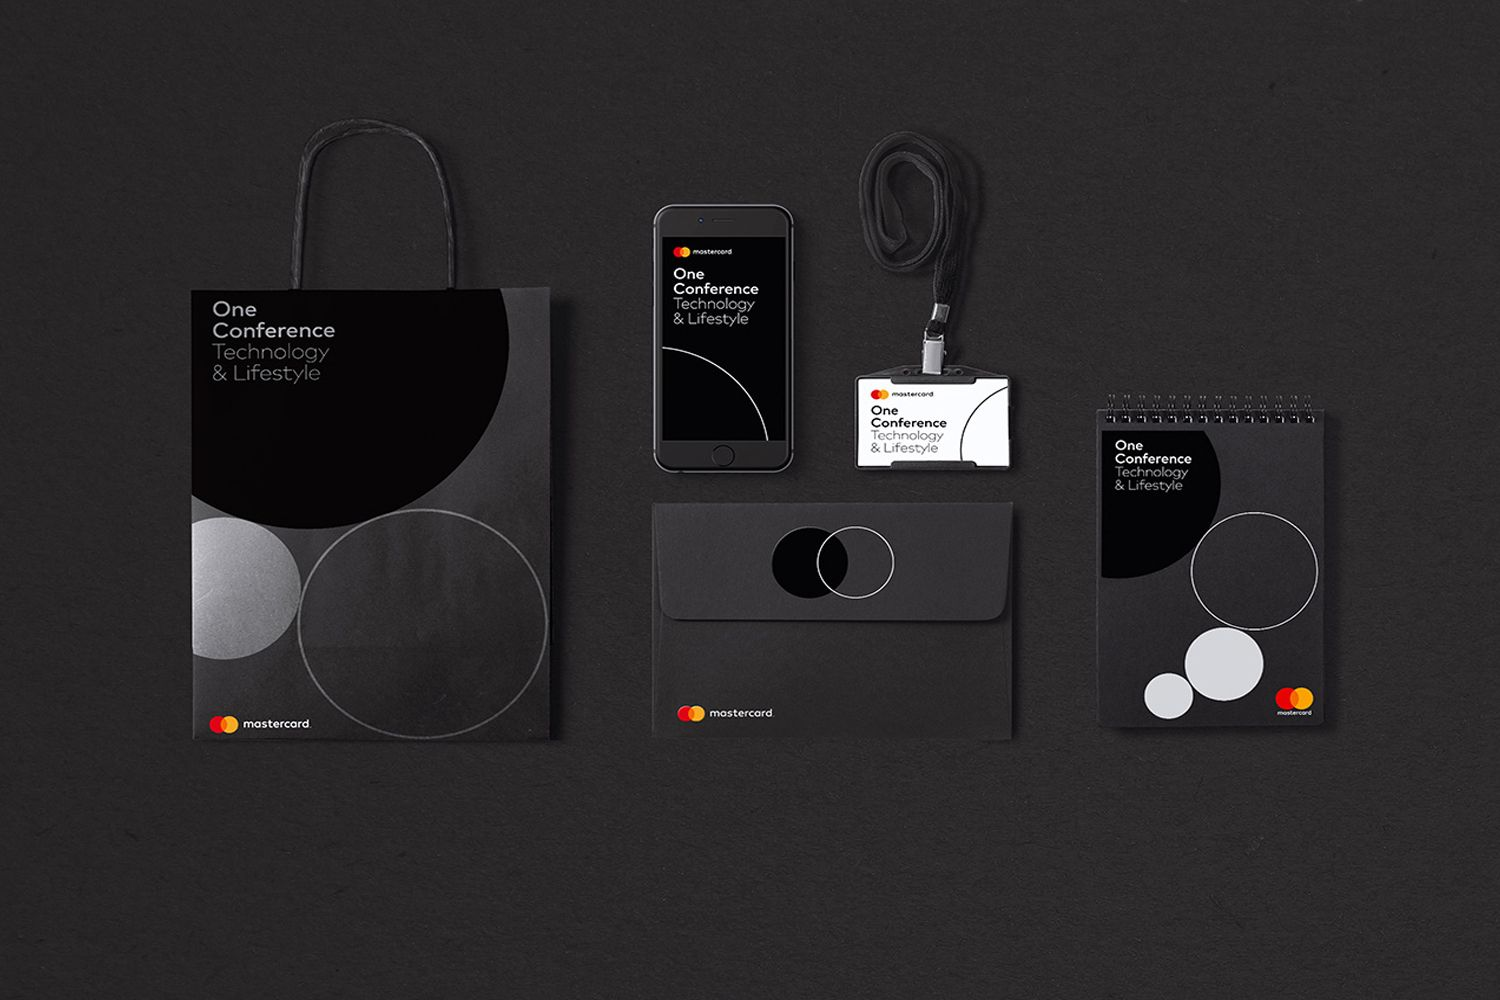 Evolution of the brand identity to emphasize simplicity, connectivity and seamlessness.The iconic red and yellow intersecting circles ofMastercardare one of the world's most recognized brands. Today the company launches an evolution of its brand identity featuring a new mark that highlights the connectivity and seamlessness of Mastercard and its payment systems. Designed by Pentagram's Michael …